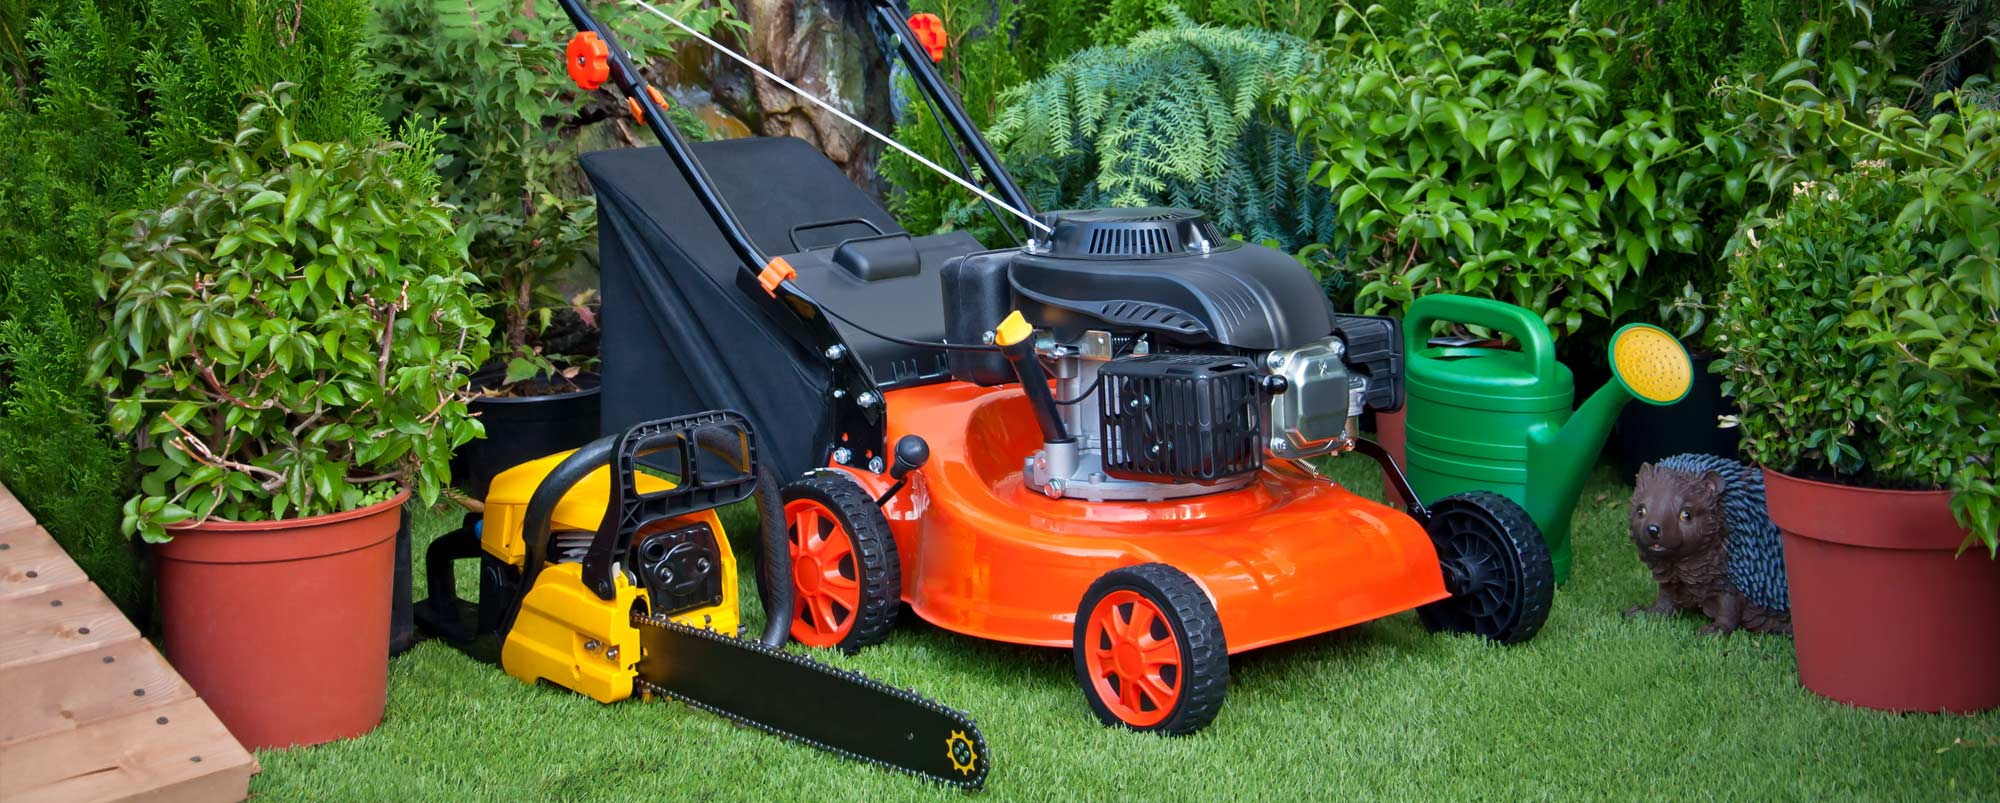 Grouping of lawn care equipment including a walk-behind push lawn mower and gas chainsaw